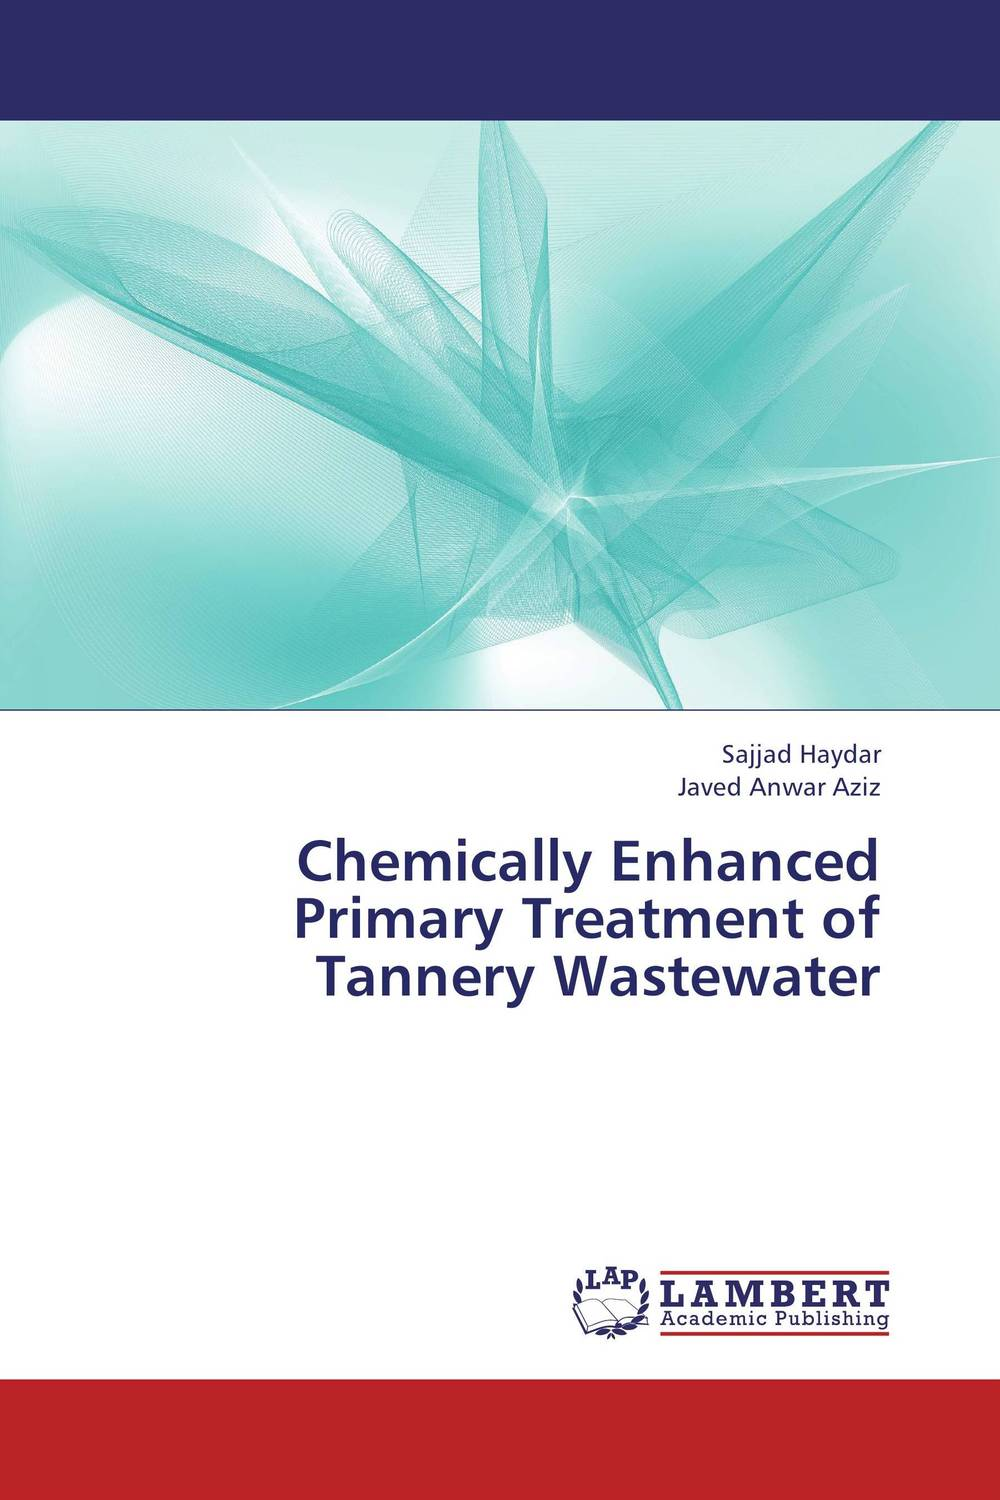 Chemically Enhanced Primary Treatment of Tannery Wastewater analysis of pharmaceuticals in wastewater and their photodegradation